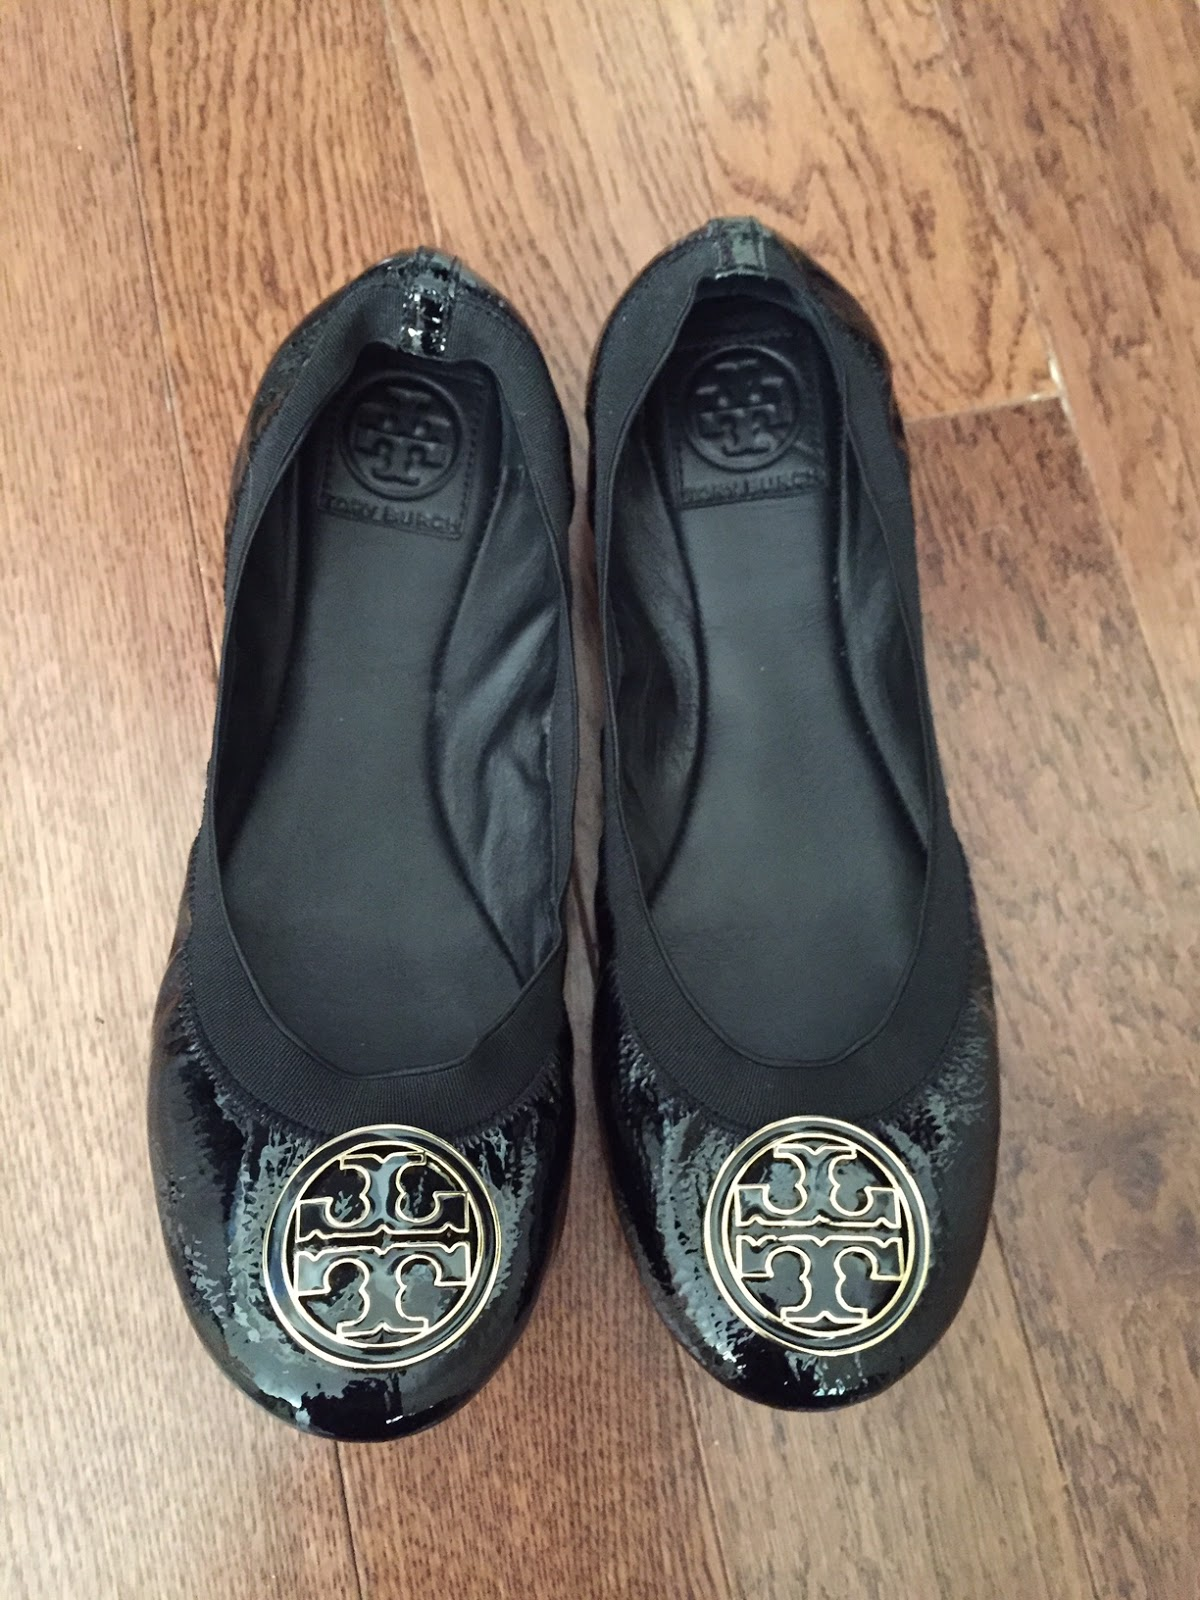 a95cb0a16119 Beauty Babble  First Impressions Review  Tory Burch Caroline Black ...